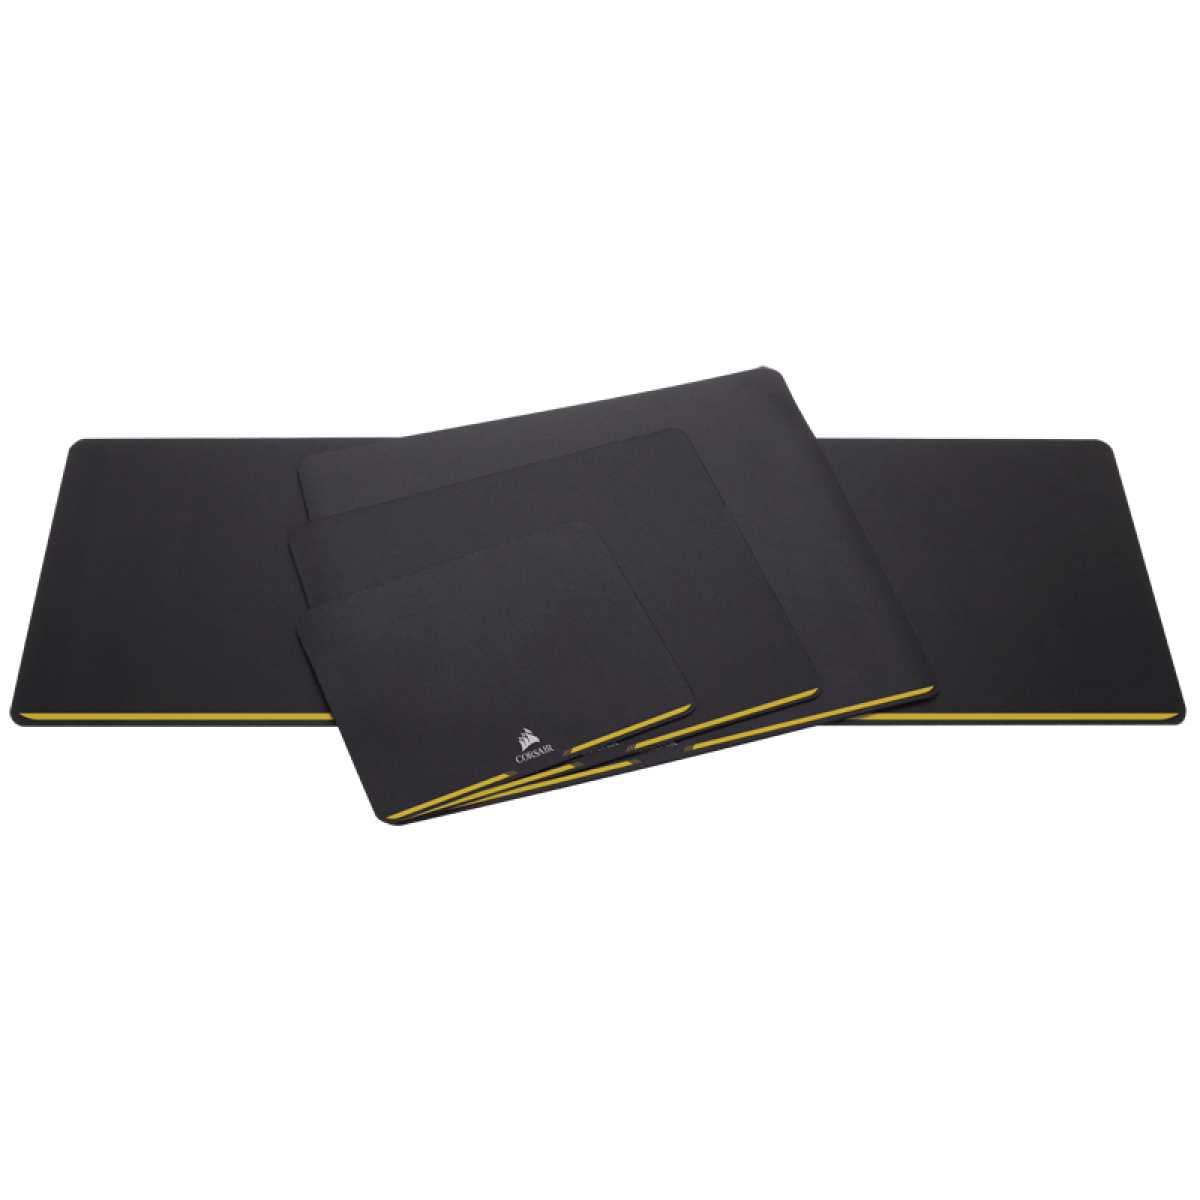 Mouse Pad Gamer Corsair MM200 Extended CH-9000101-WW